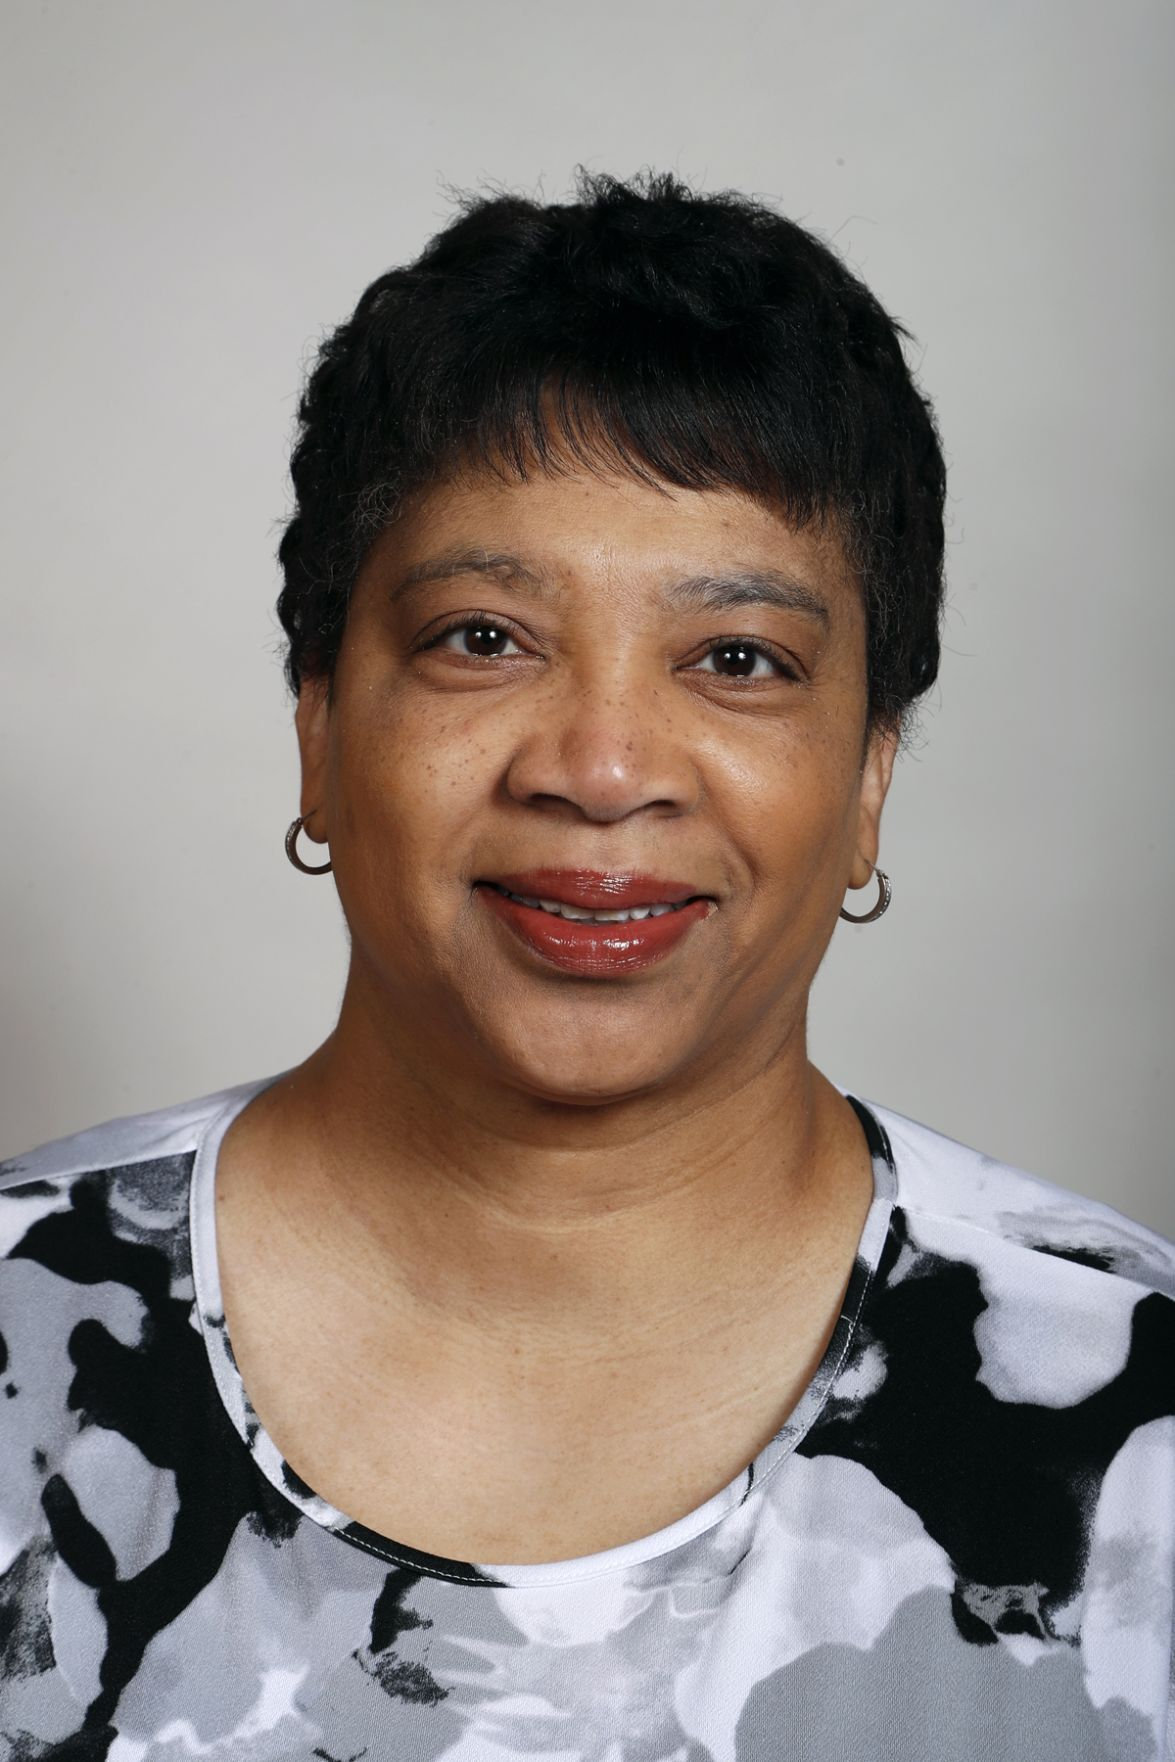 Iowa state Rep. Phyllis Thede